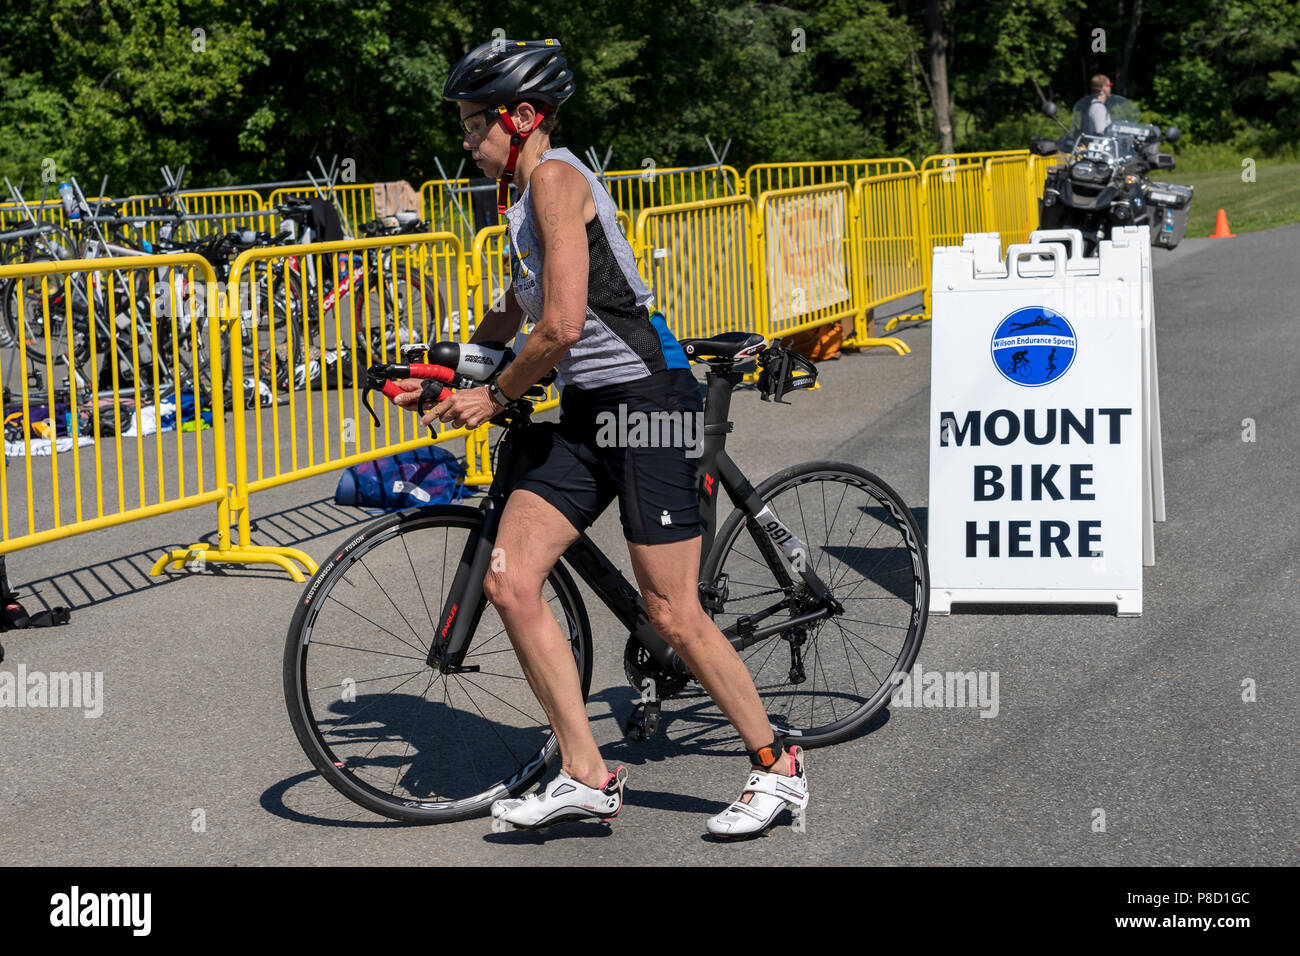 Kathleen Meany competing in the bike segment in the 2018 Stissing Triathlon - Stock Image